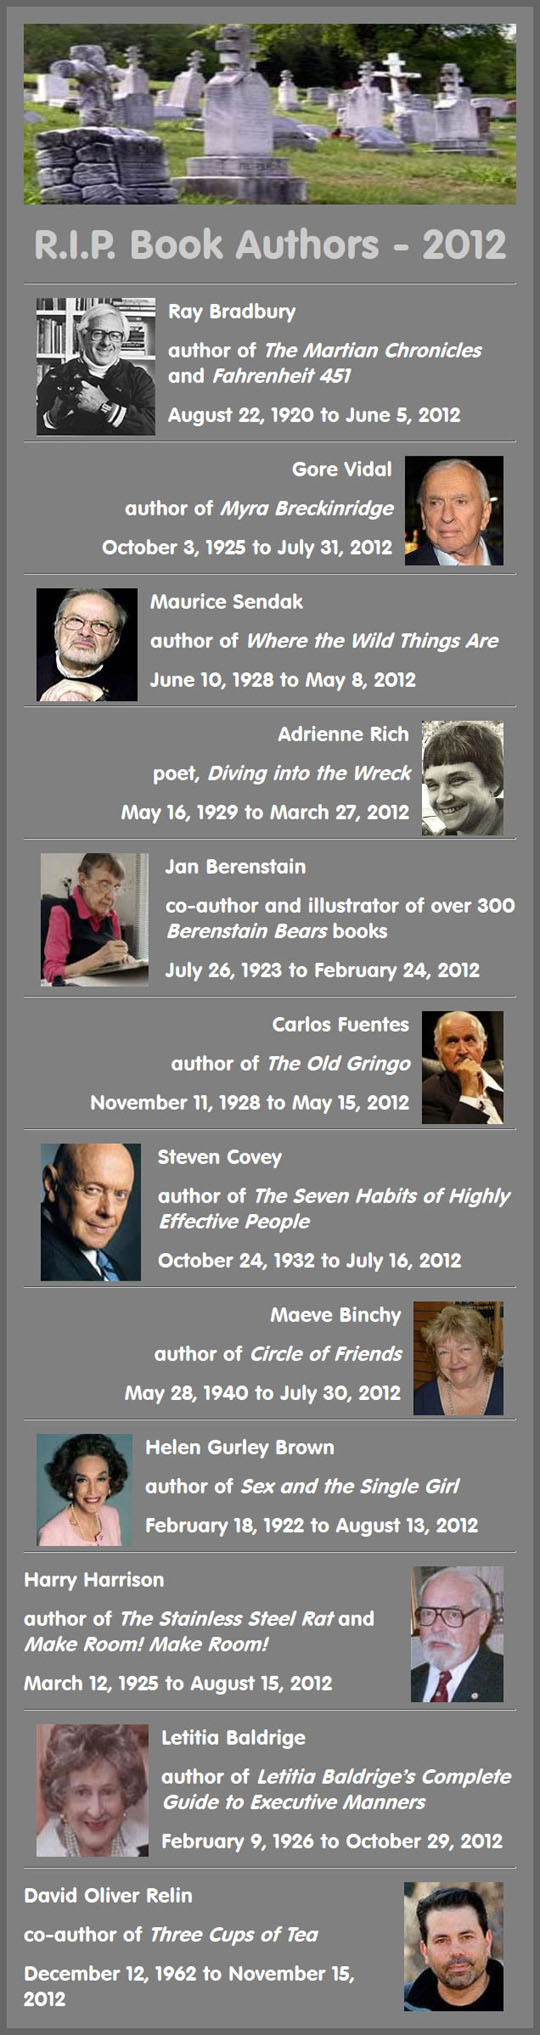 Book Authors who died in 2012